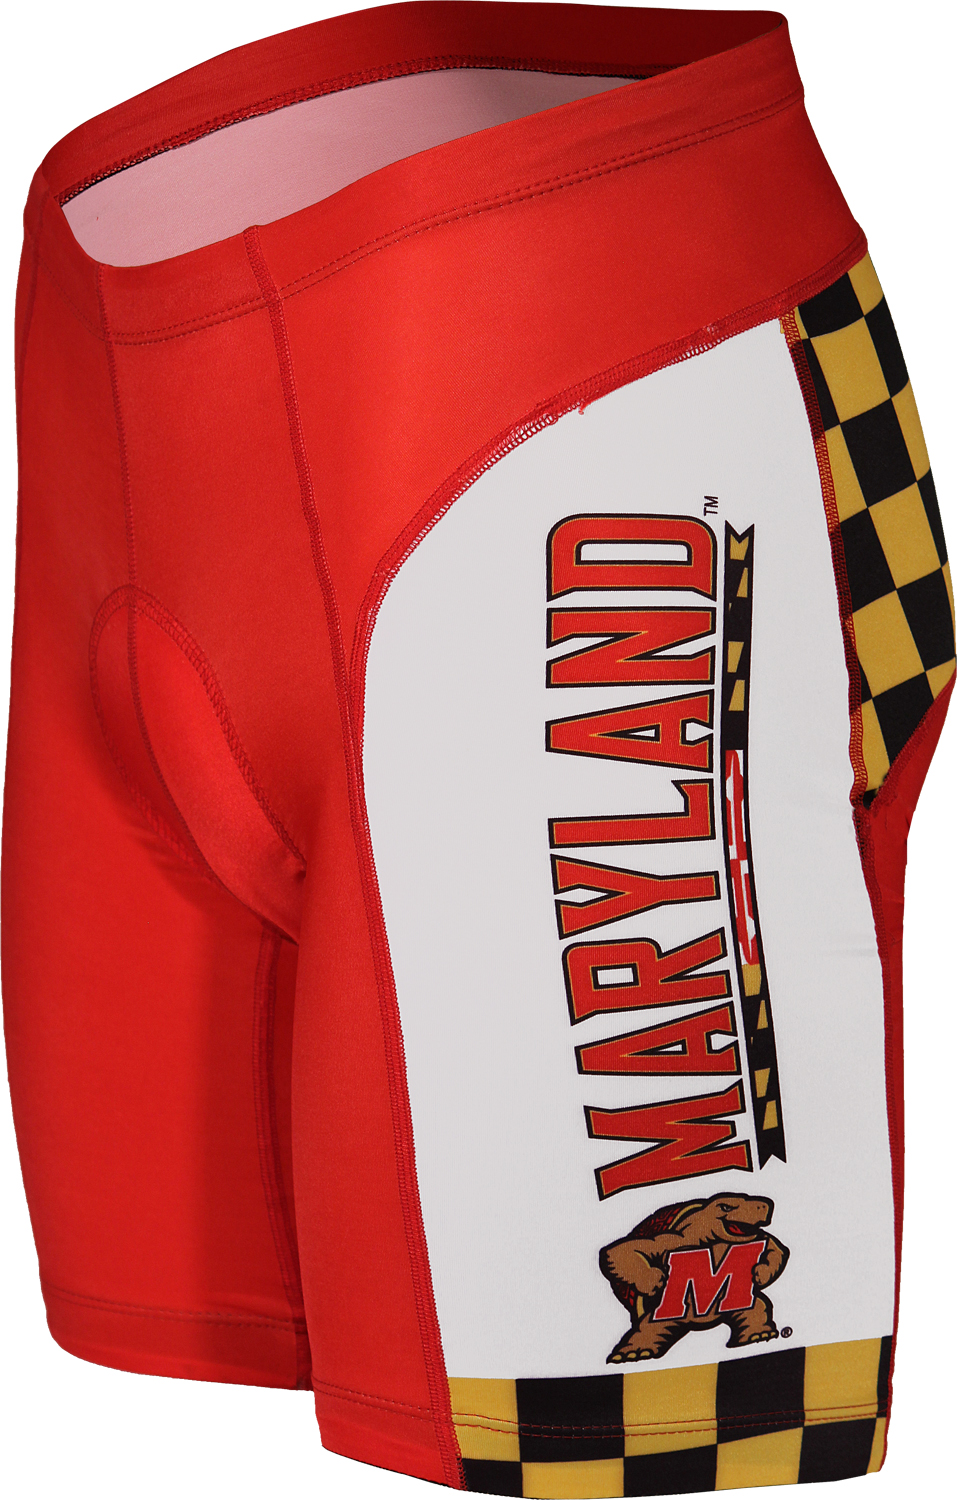 University of Maryland Terrapins Cycling Shorts S